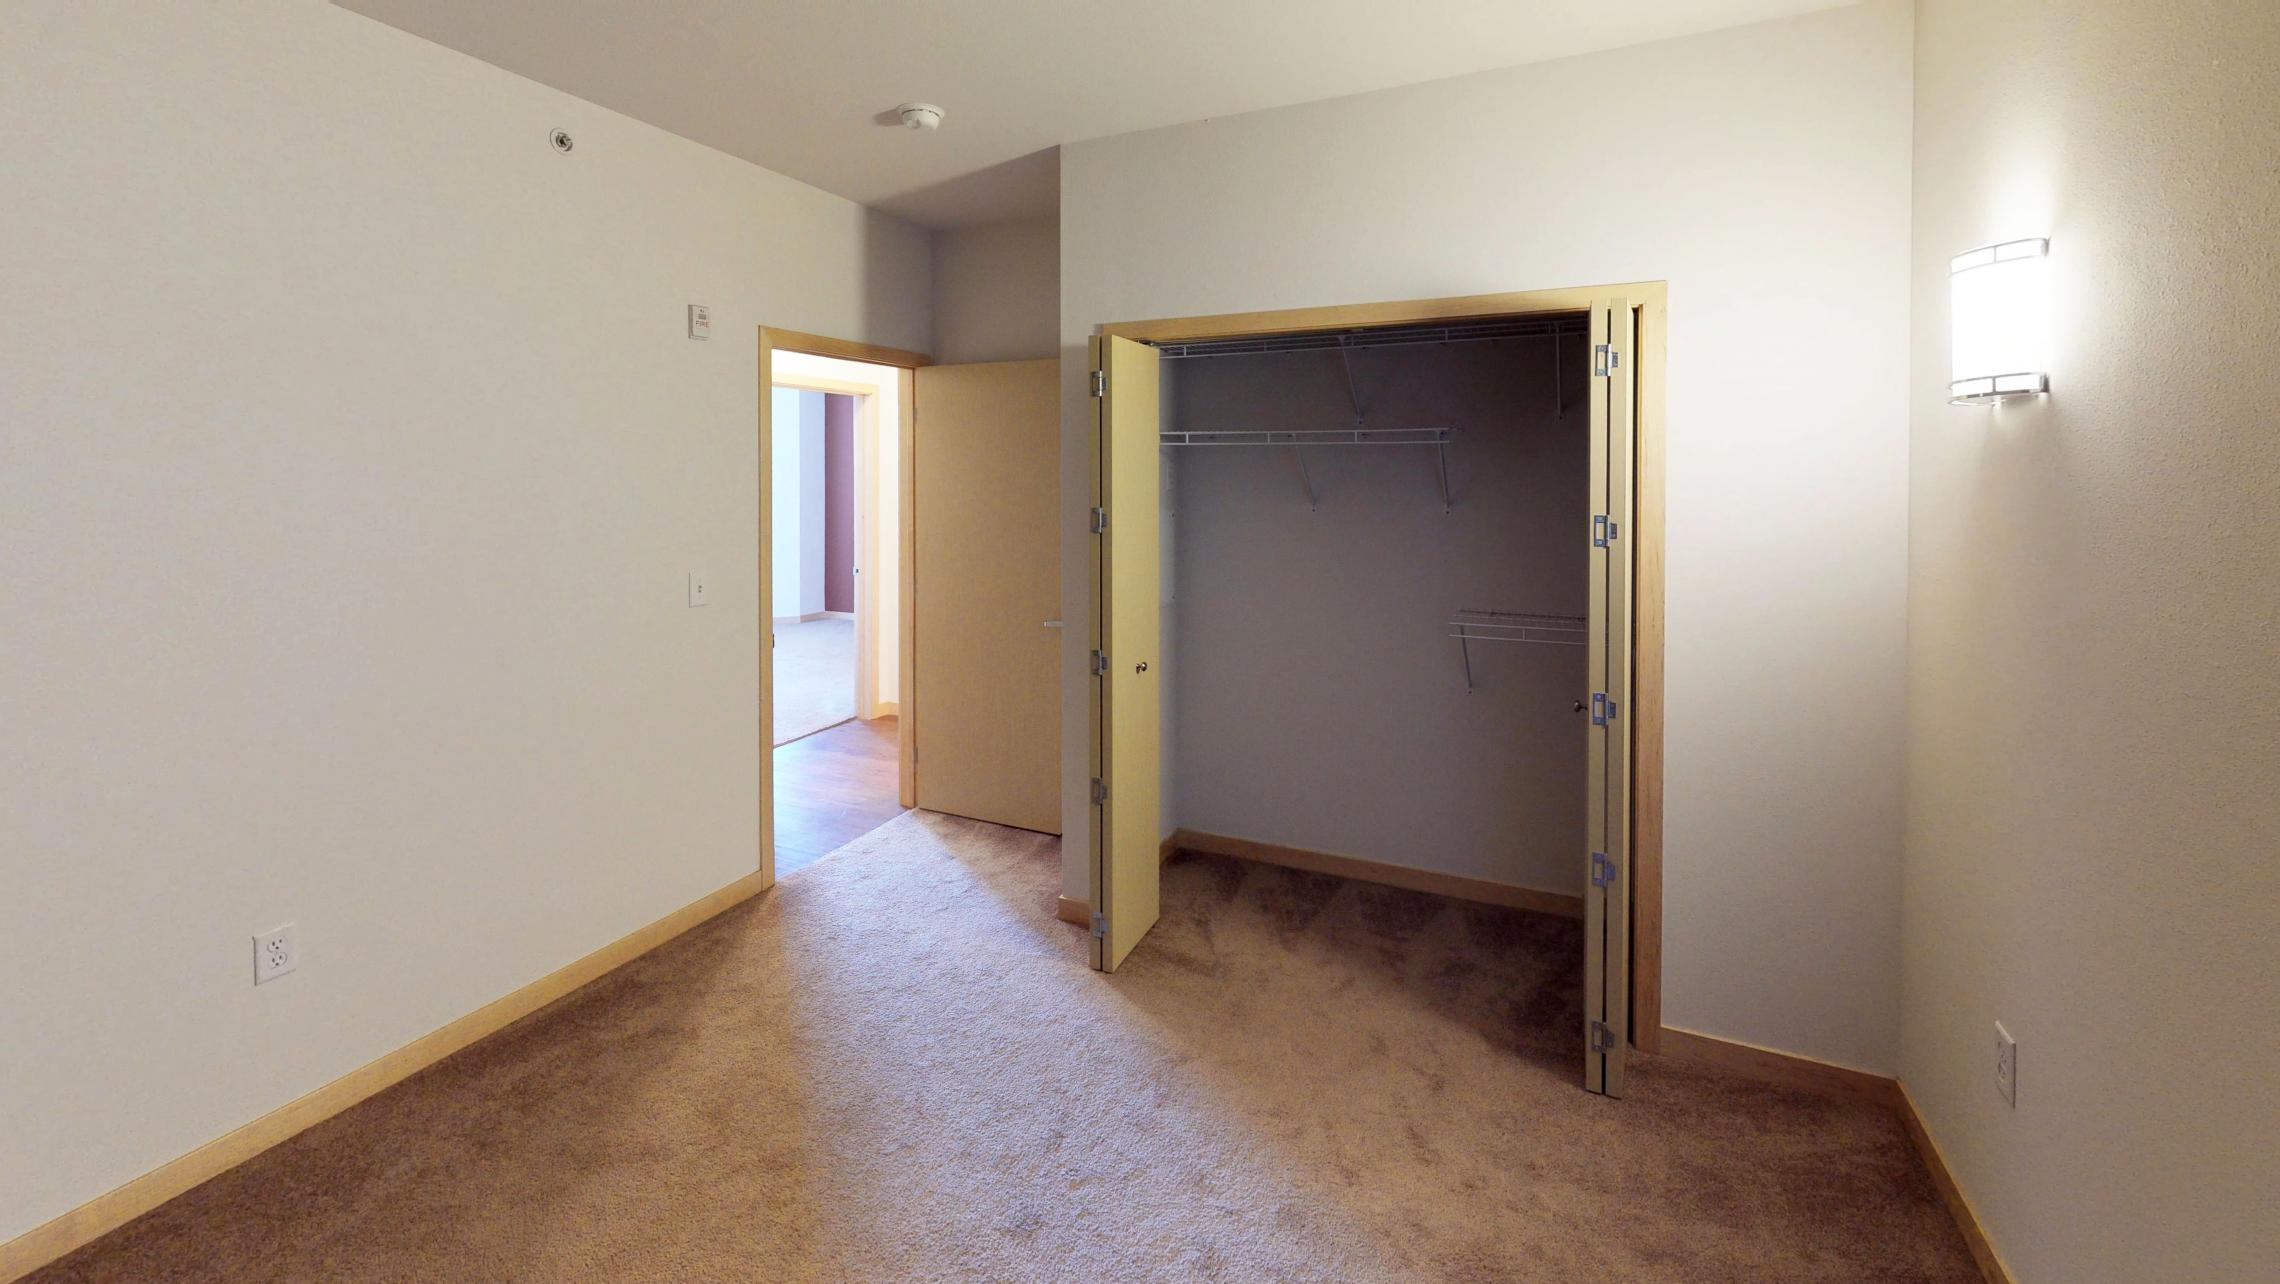 The-Depot-1-310-Apartments-Two-Bedroom-Bathroom-Kitchen-Living-Laundry-Balcony-Patio-Downtown-Fitness-Terrace-Madison